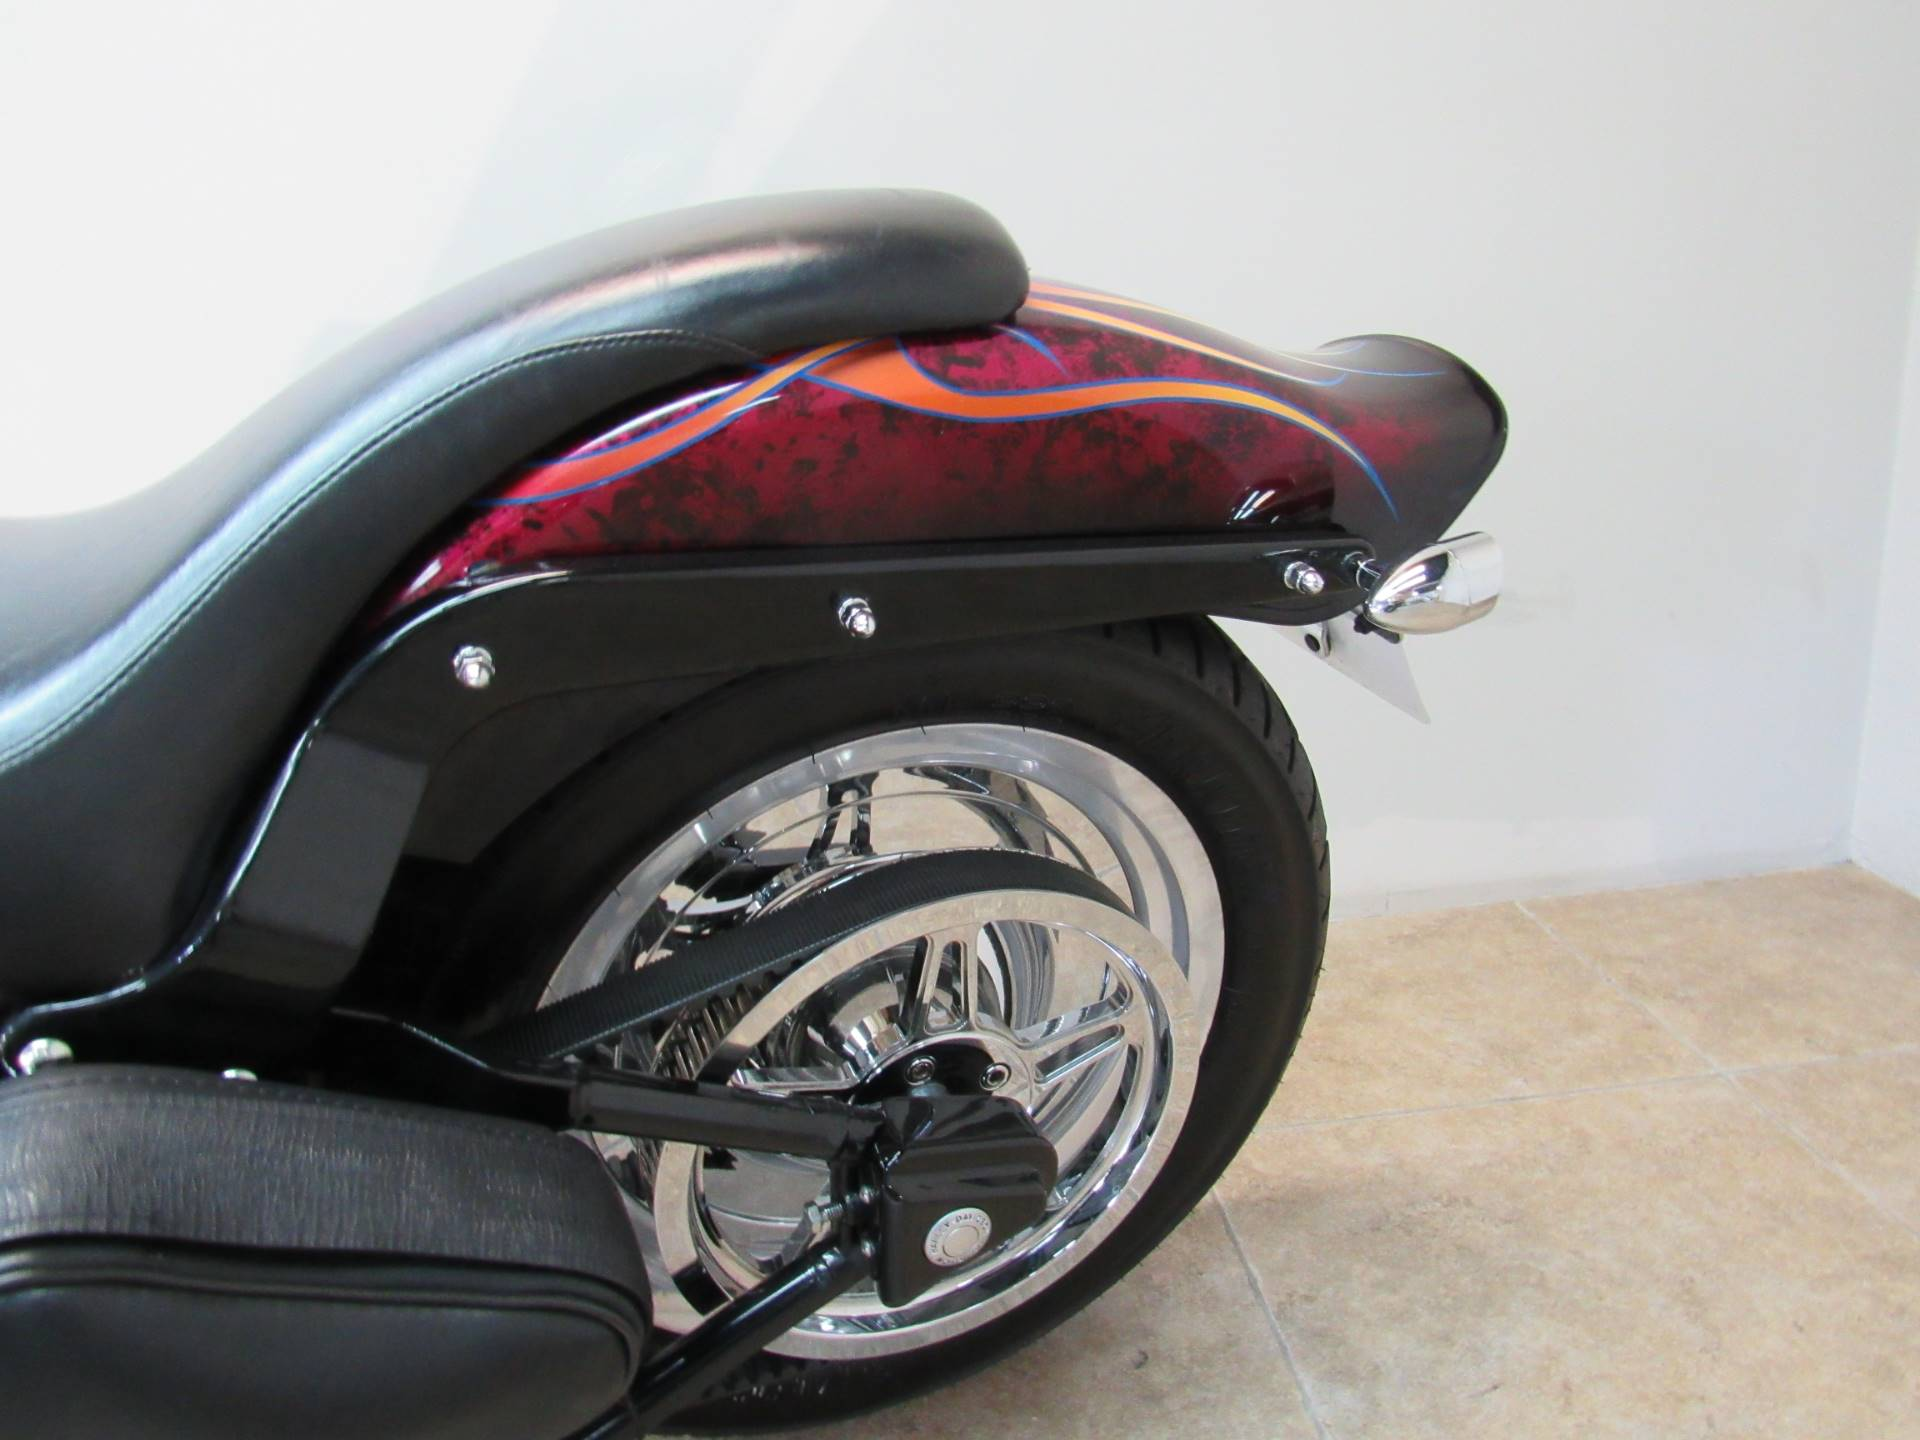 1996 Harley-Davidson softail custom in Temecula, California - Photo 30